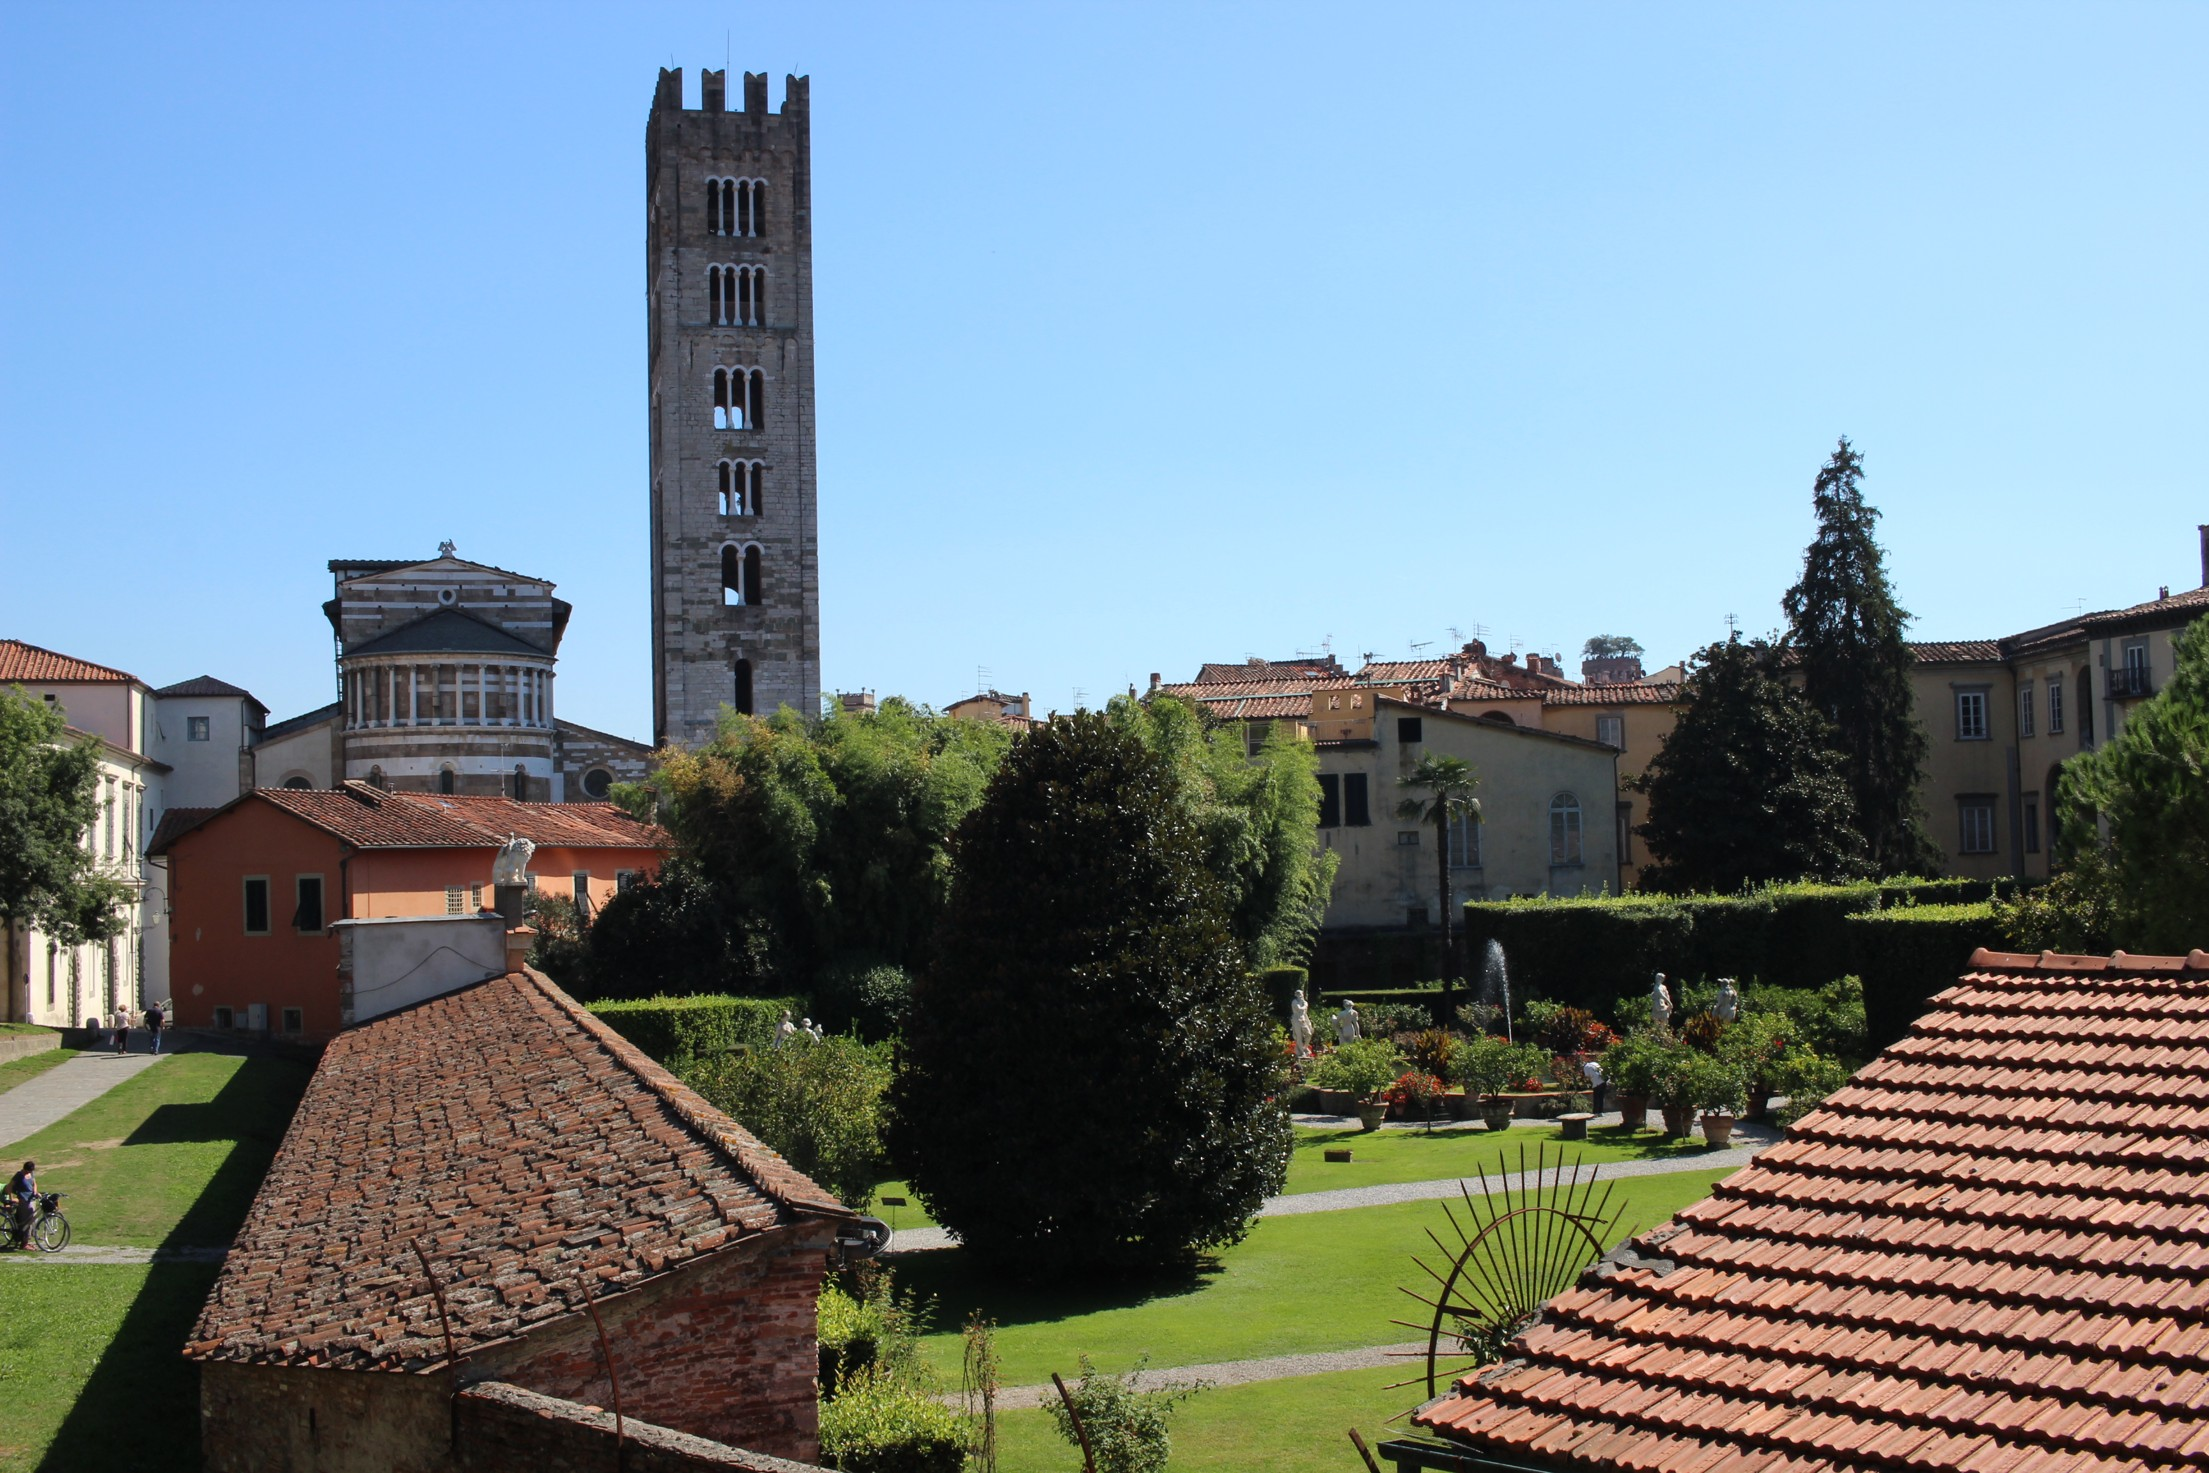 A few words about Lucca